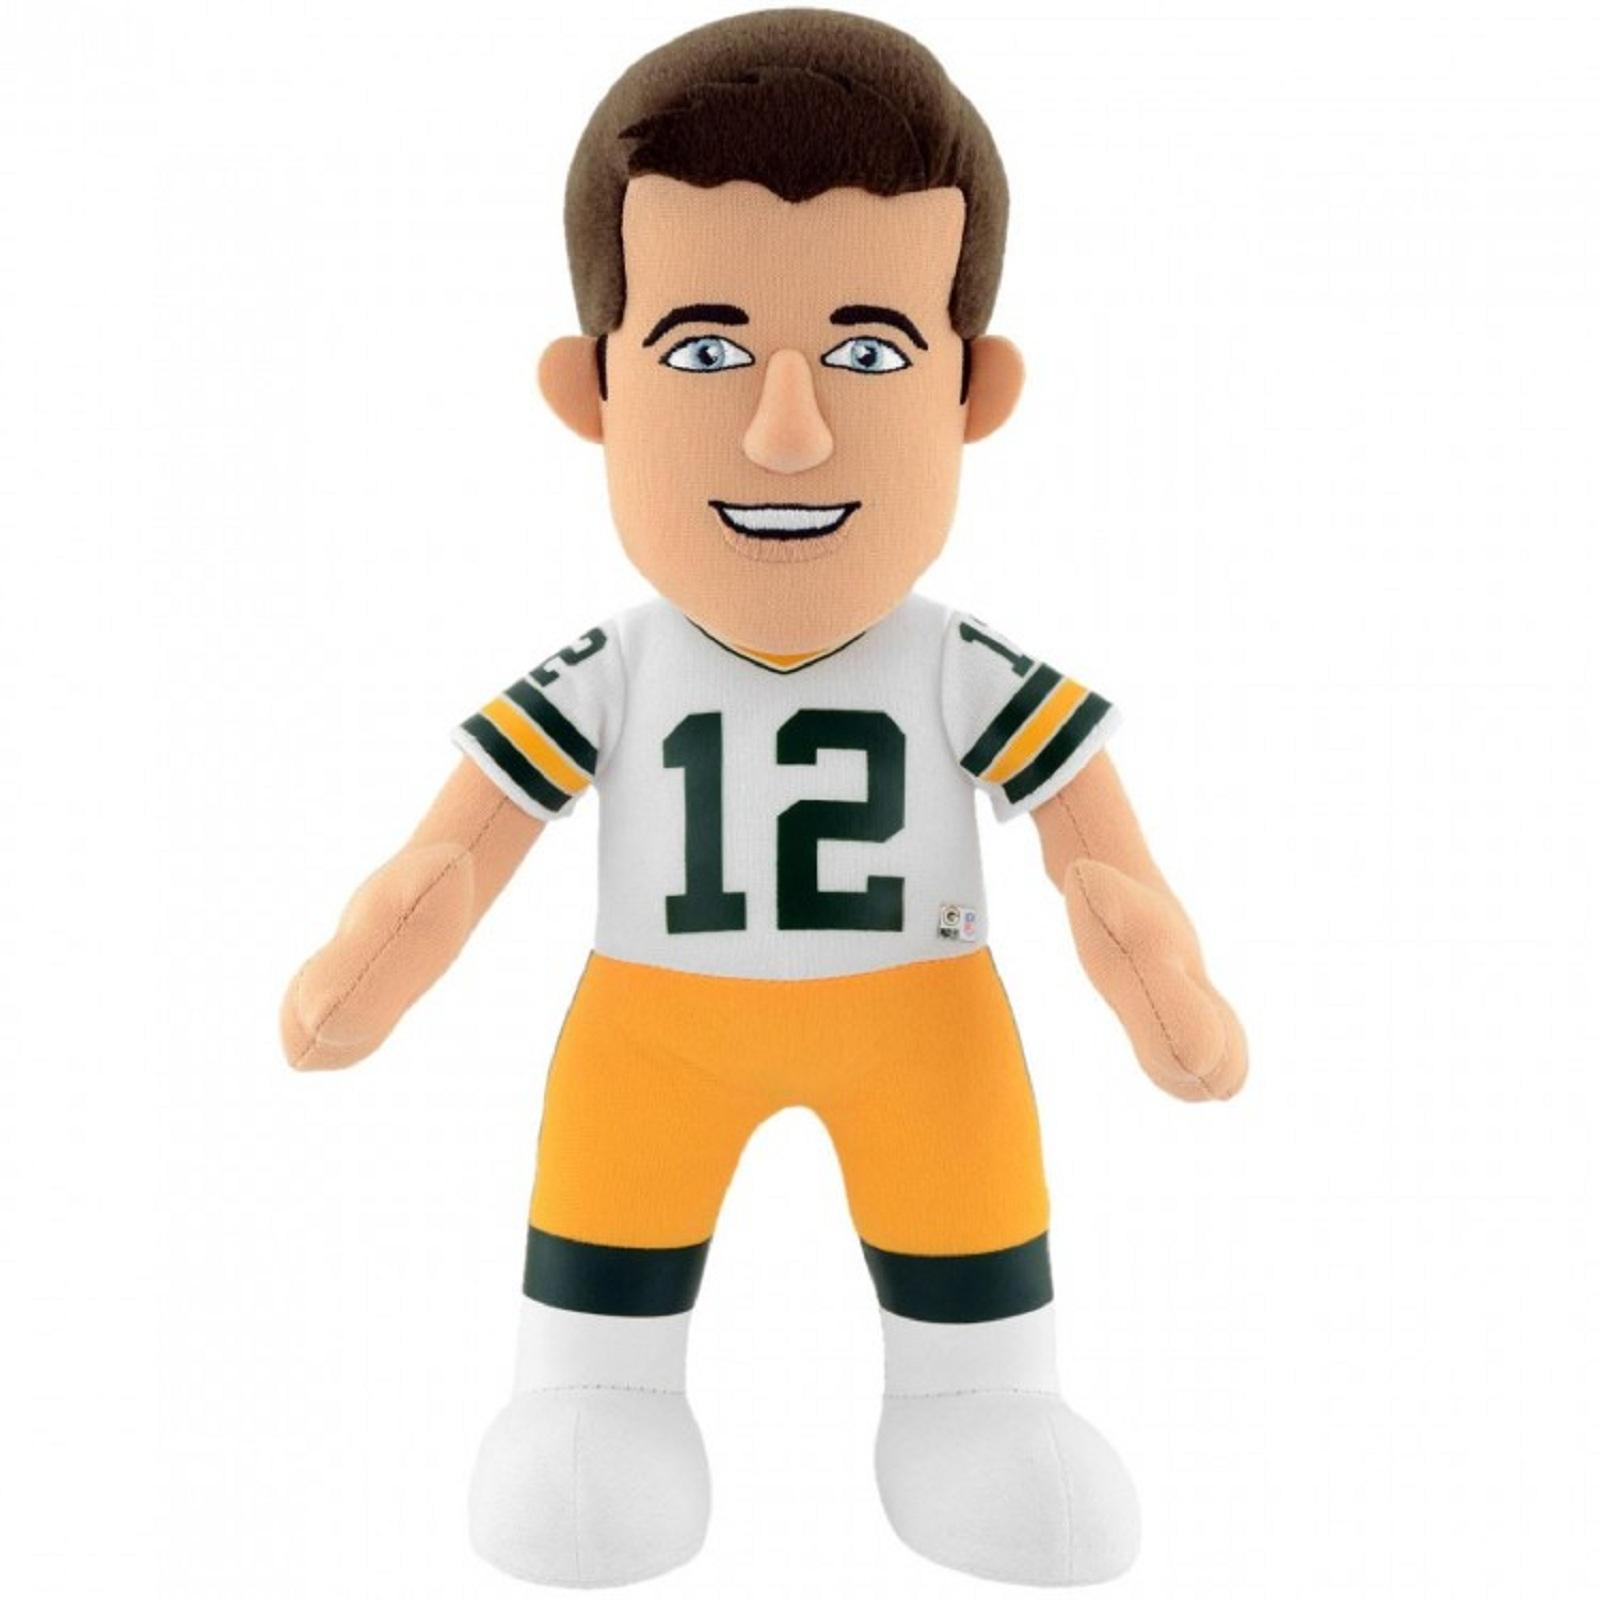 Green Bay Packers Aaron Rodgers 10 inch Plush Figure - White Jersey PartNumber: 046W008896993001P